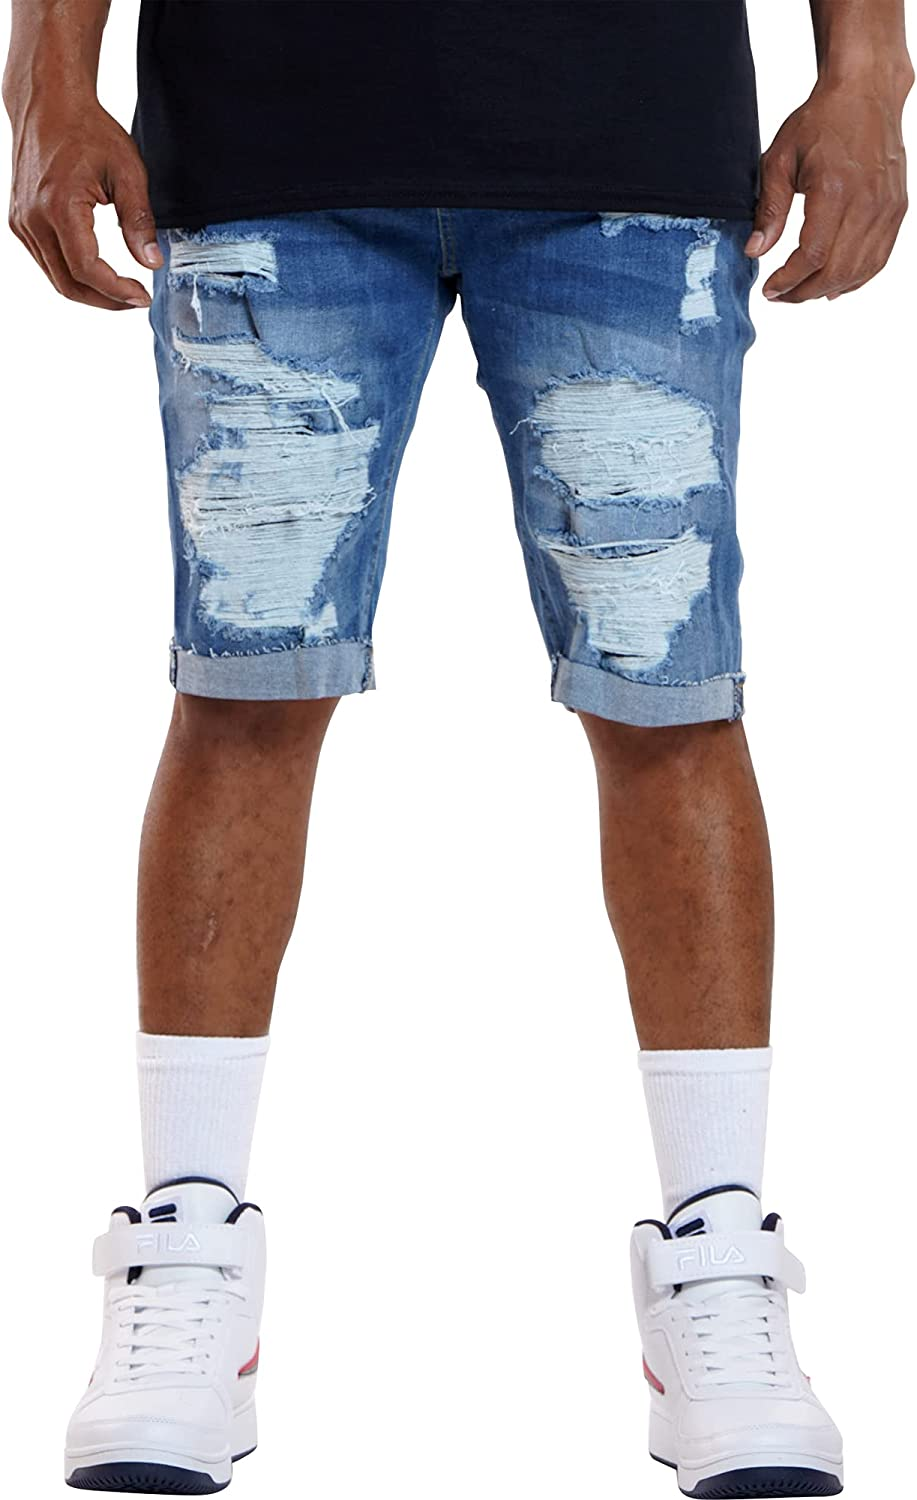 XRAY JEANS Men's Ripped & Repair Patches Short - Light Blue